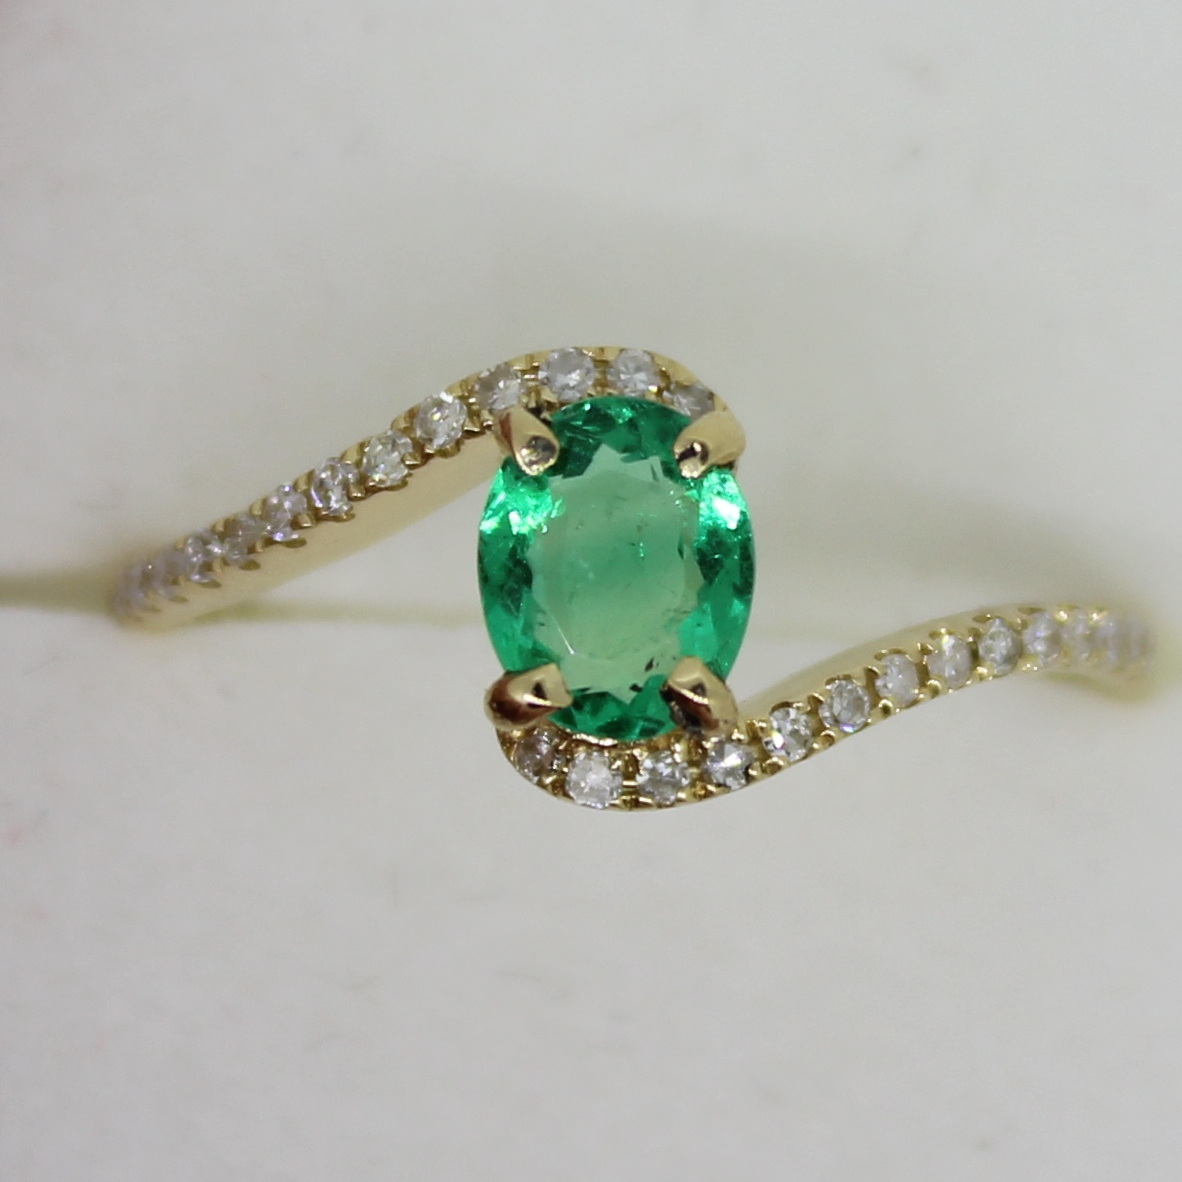 destin emerald cloudring company jewellery and ring erica trapiche cloud fl courtney mccaskill